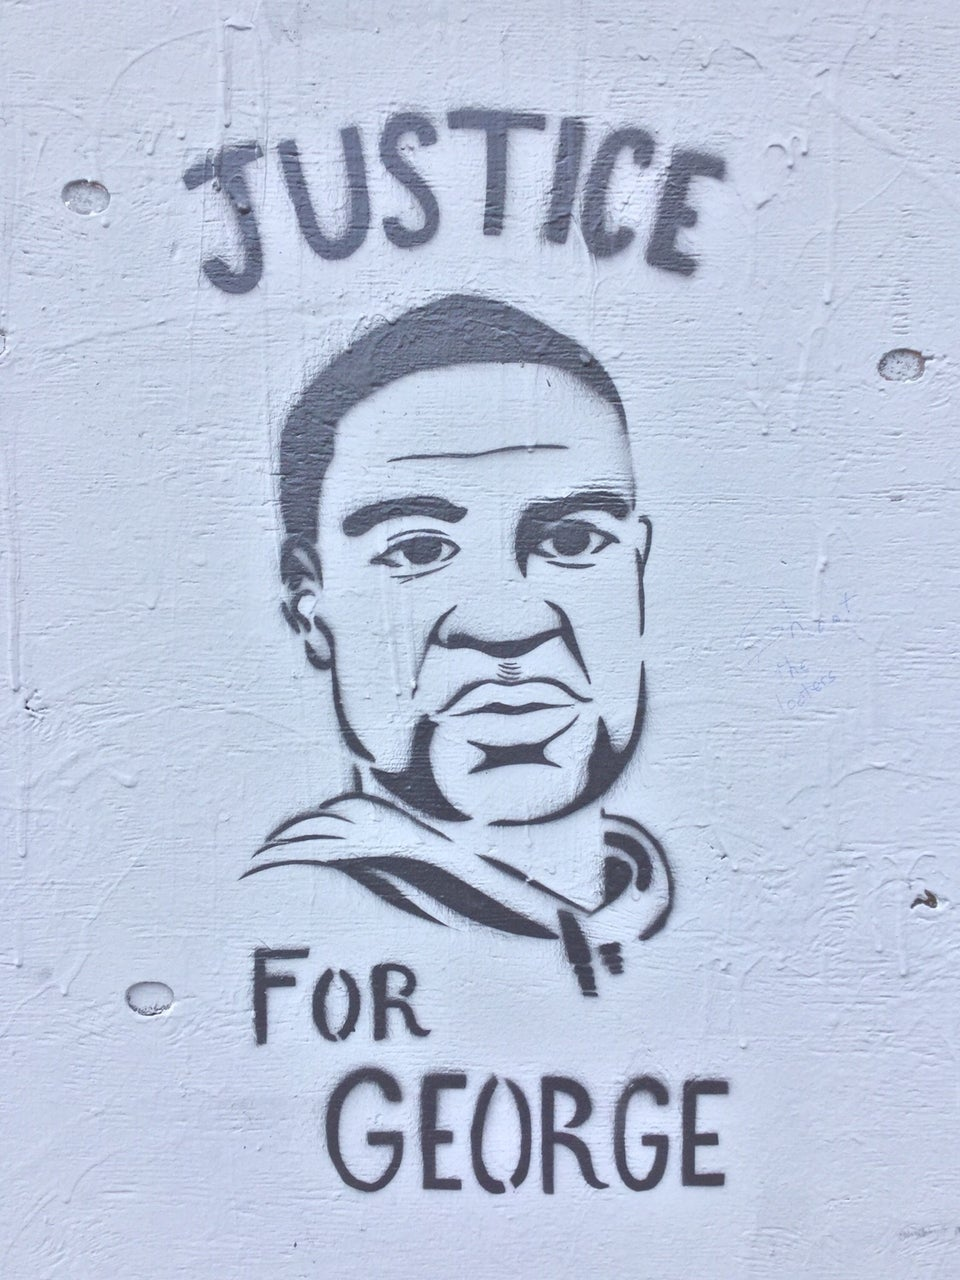 Stencil street art of George Floyd on a gray wall with the word JUSTICE above his head, and FOR GEORGE below. Two of the dried drippings of gray paint appear as if they are tears coming from his right eye.